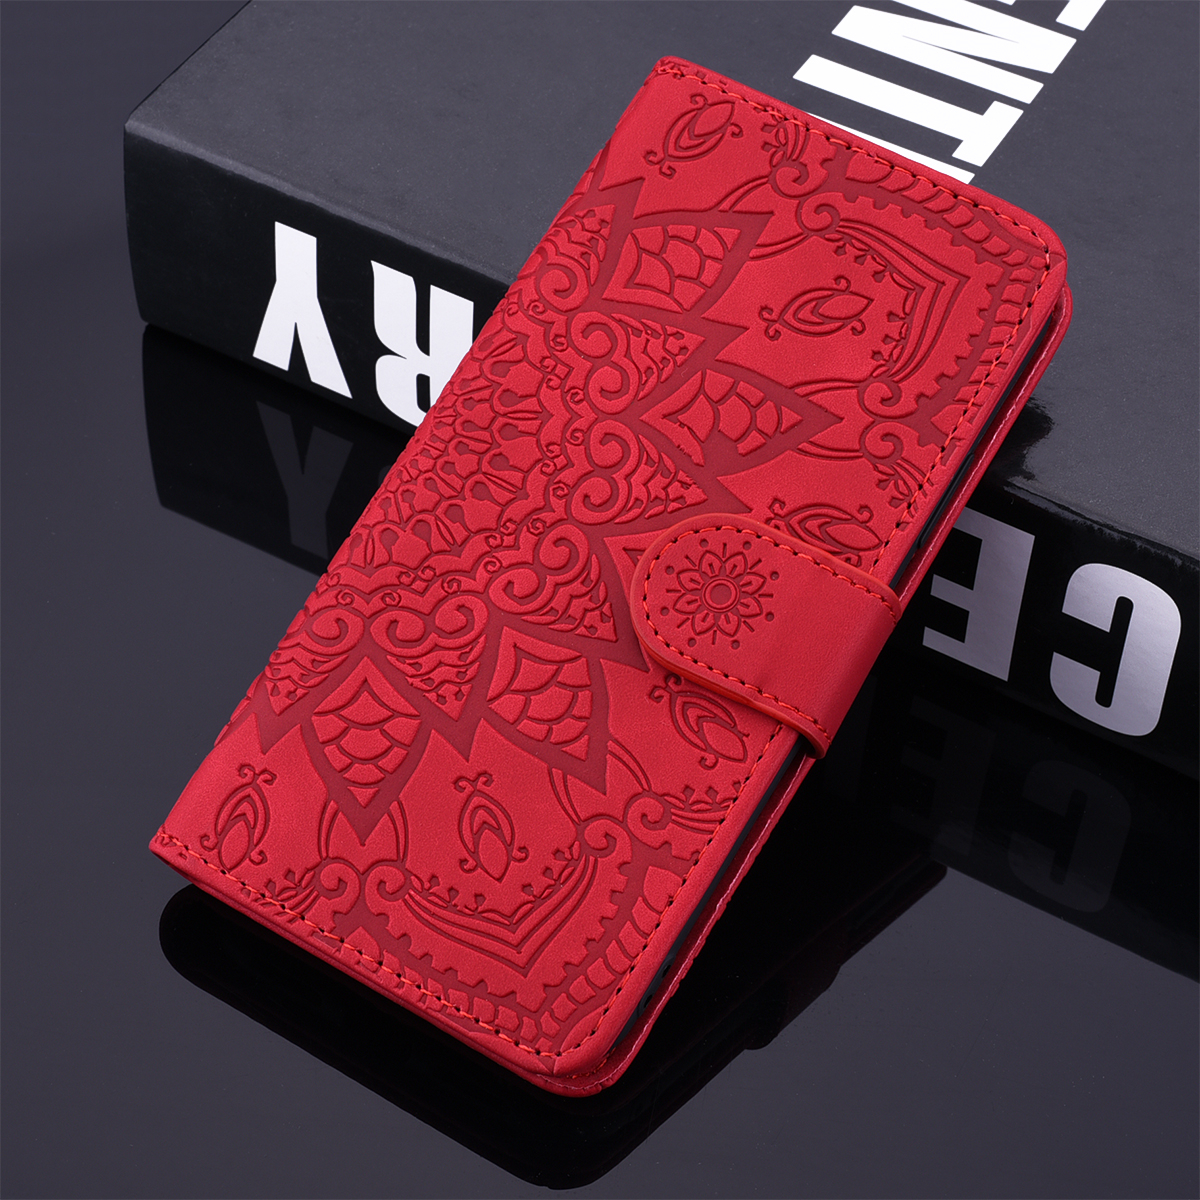 Scrub Datura Case For IPhone 11 Pro 7 8 6 6s Plus X XS Max XR Flip Leather 3D Embossed Book Case For IPhone11 5 5S SE 8Plus